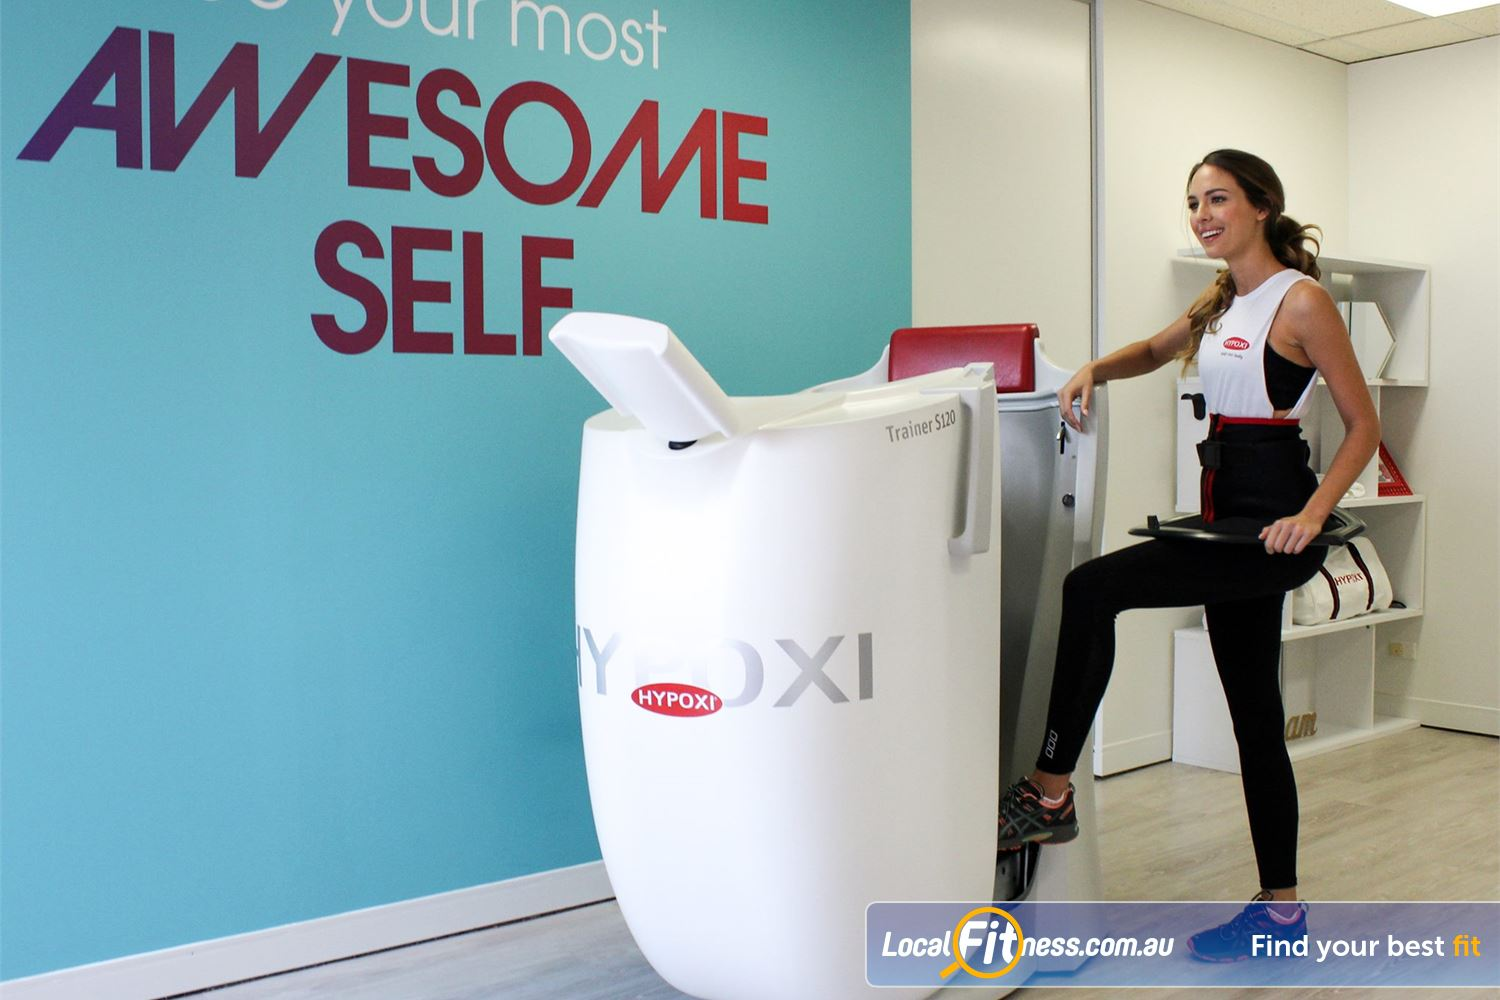 HYPOXI Weight Loss Near Willagee For women HYPOXI is great for Myaree cellulite reduction.